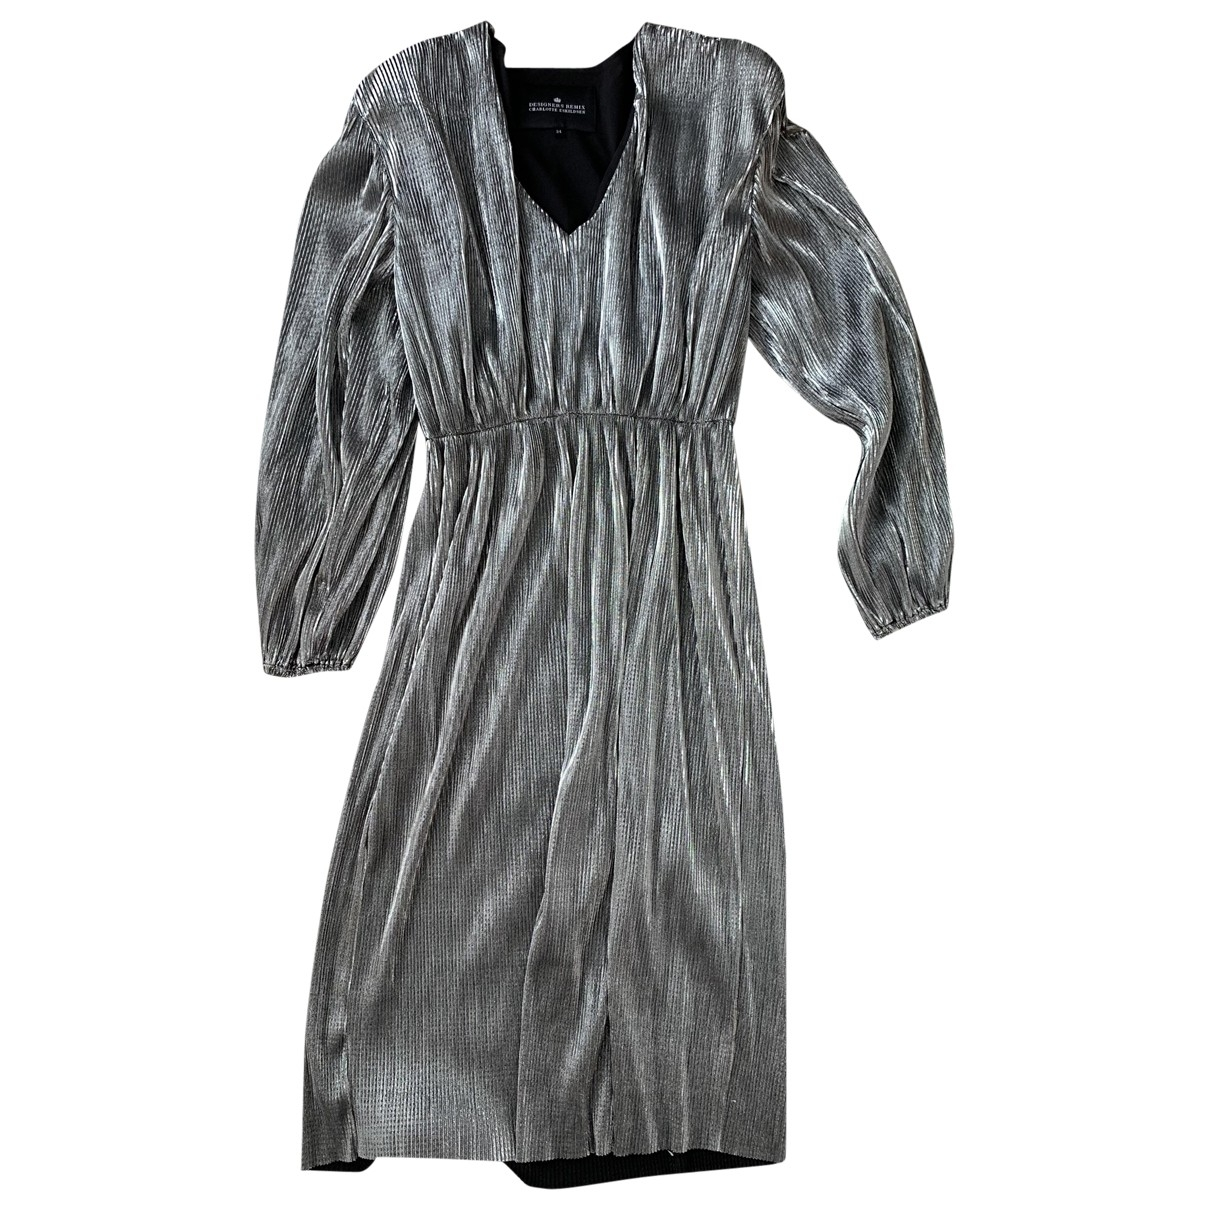 Designers Remix \N Silver dress for Women 34 FR